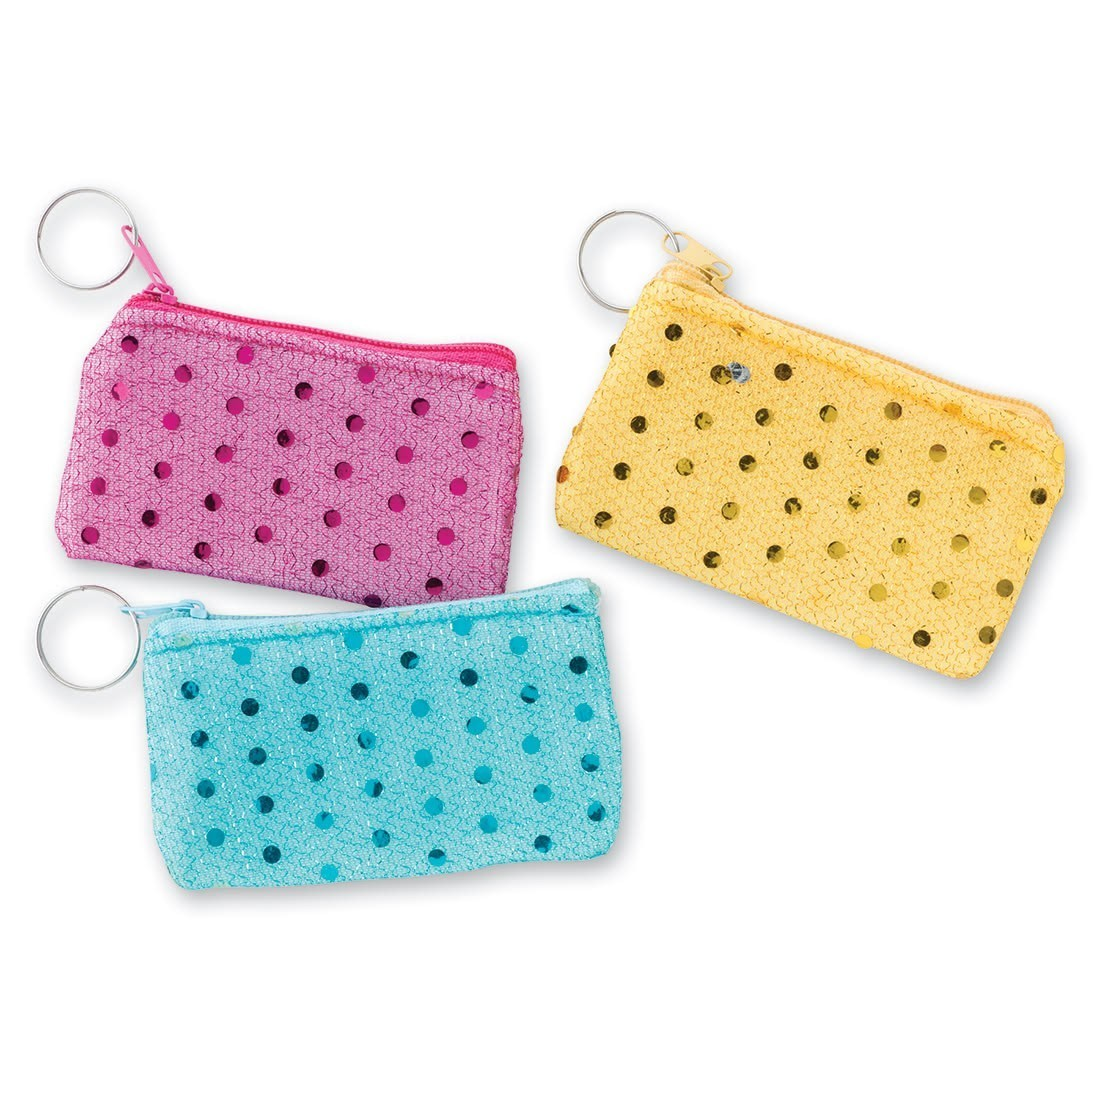 Sequin Purse Backpack Pulls [image]